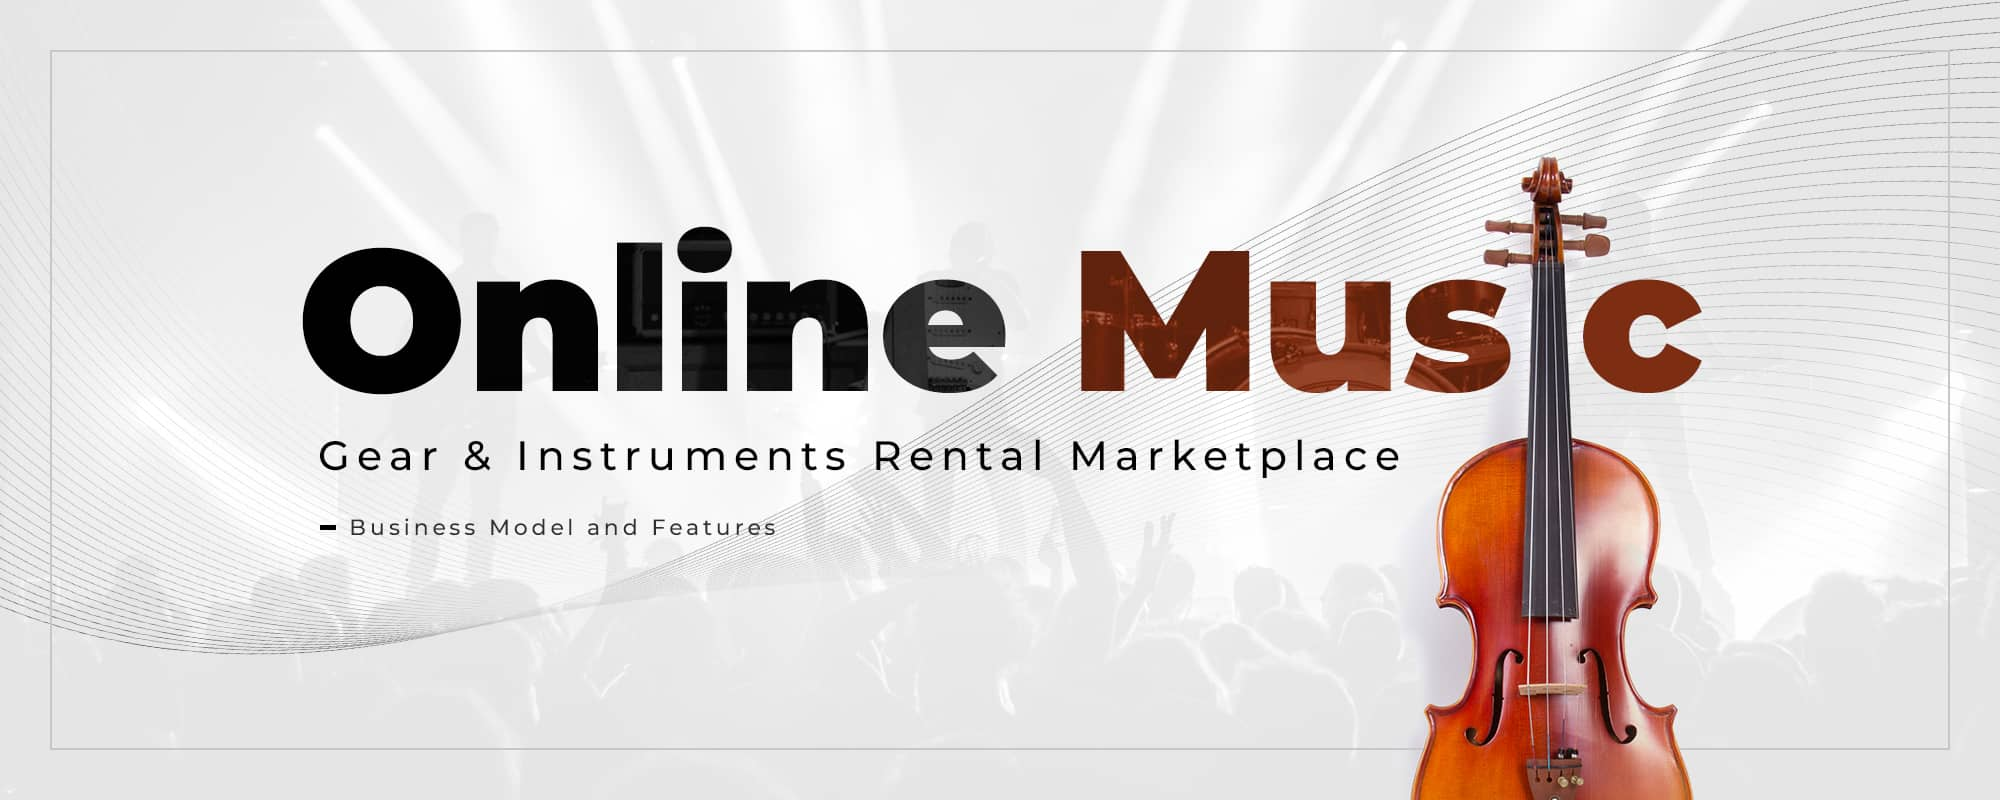 Online Music Gear & Instruments Rental Marketplace- Business Model and Features